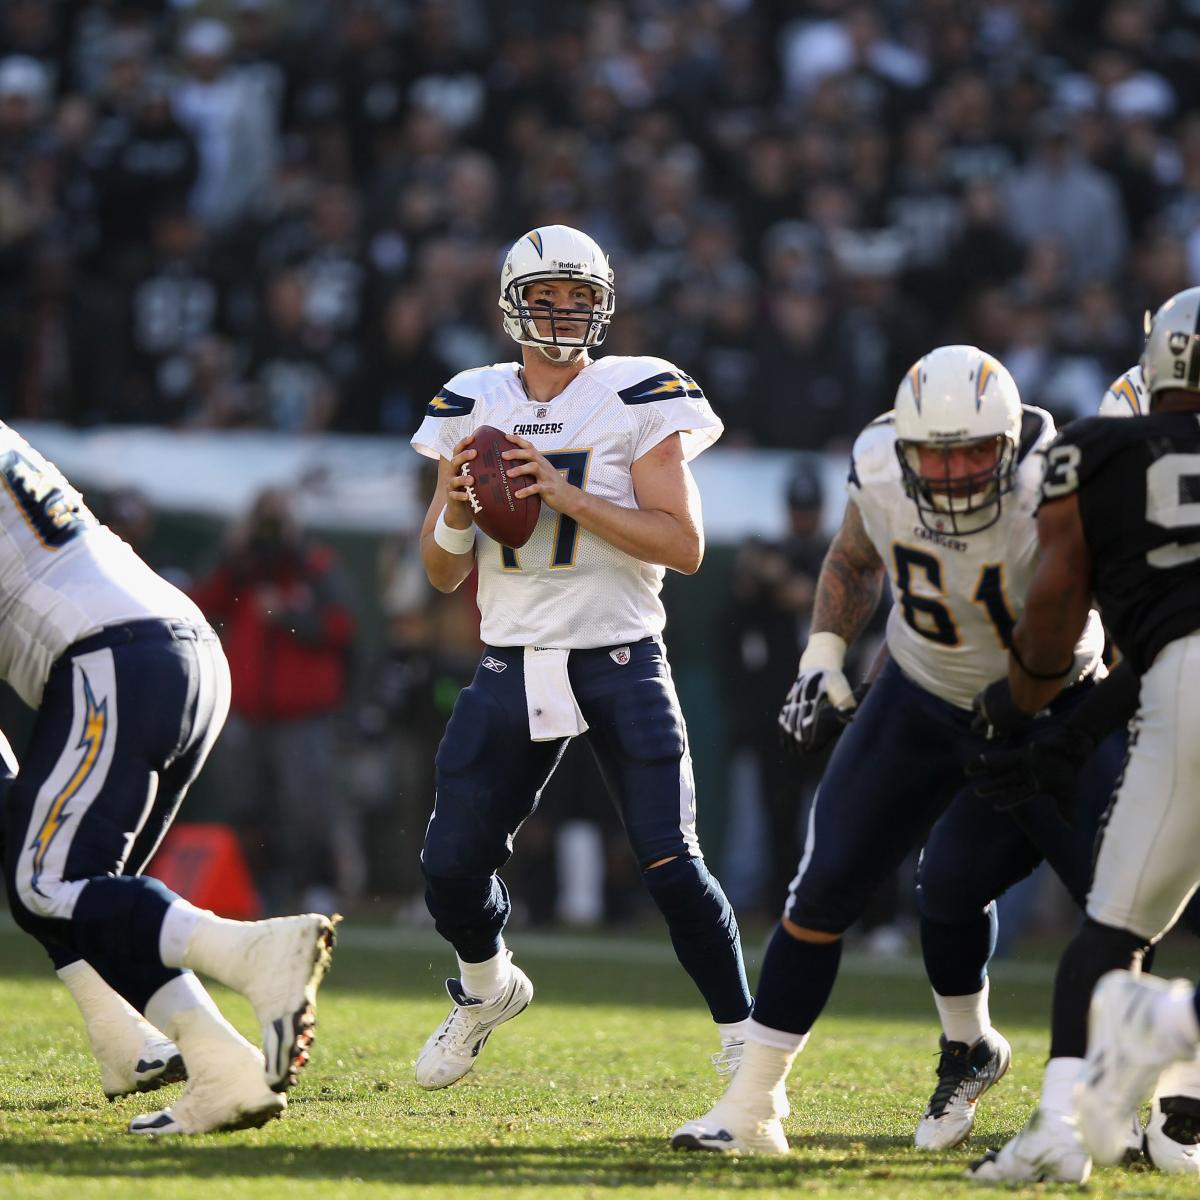 San Diego Chargers Broadcast: Chargers Vs. Raiders: Spread Info, Line And Predictions